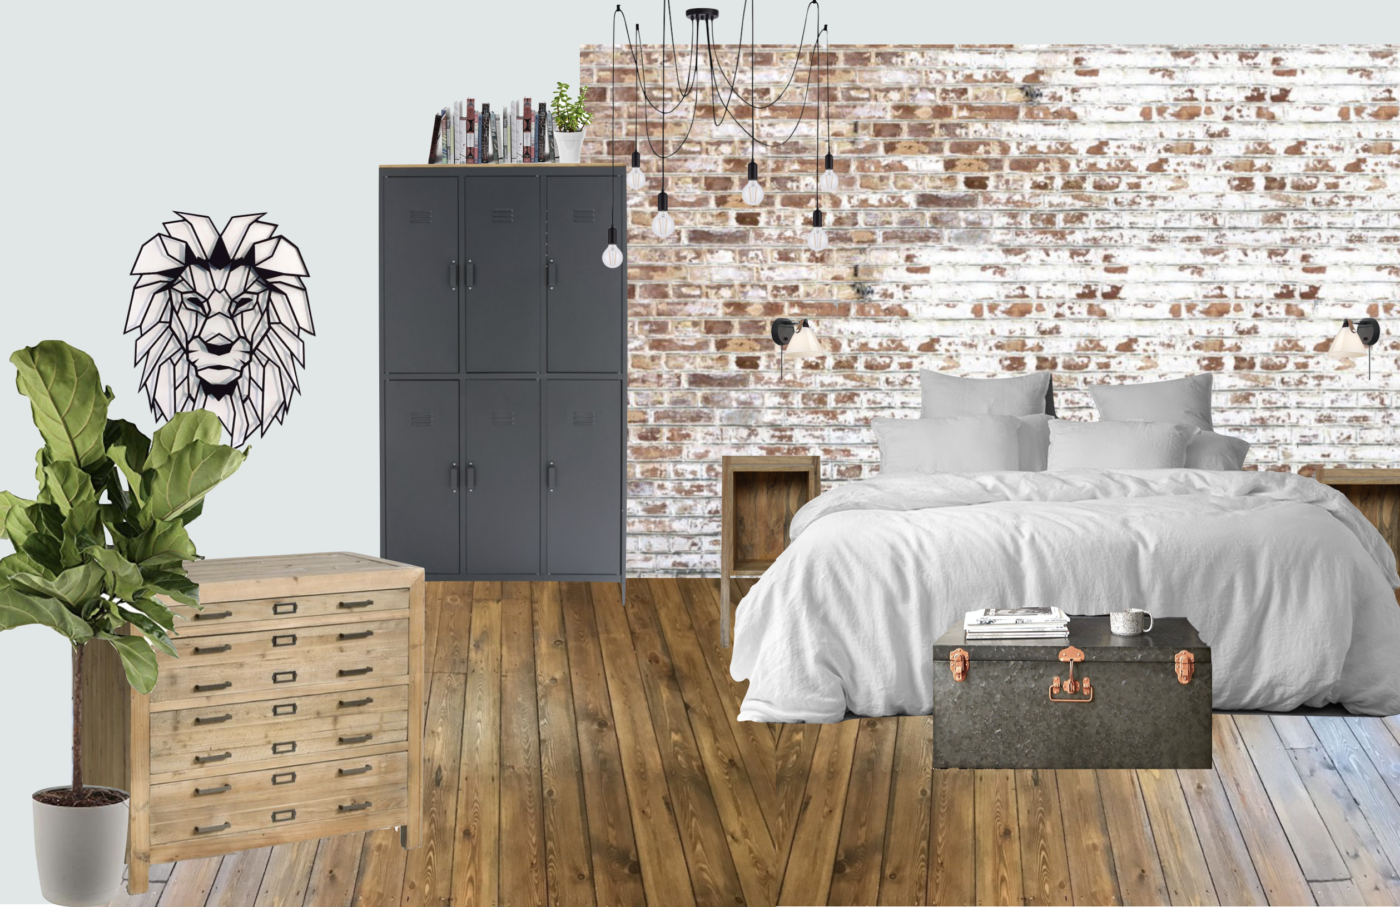 Brick Wall - Loft Bedroom Moodboard